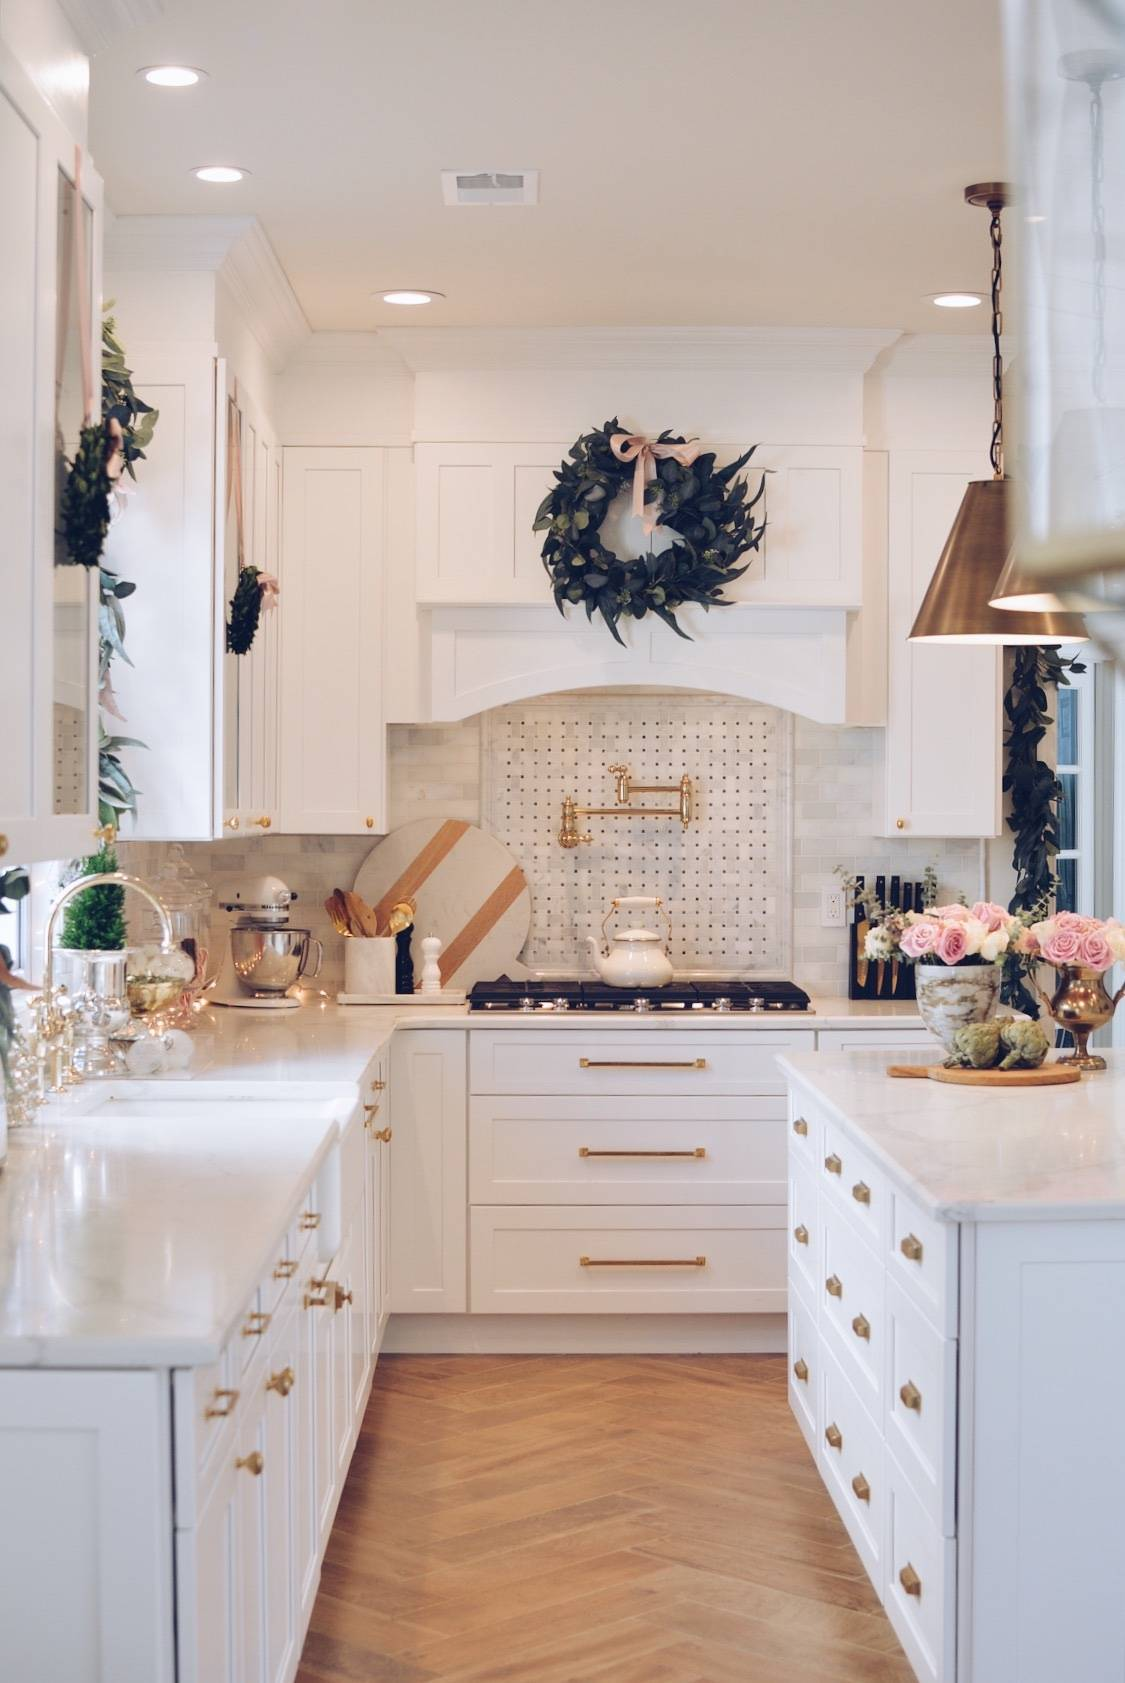 Elegant Christmas Part II - Christmas Kitchen Decor - The Pink Dream